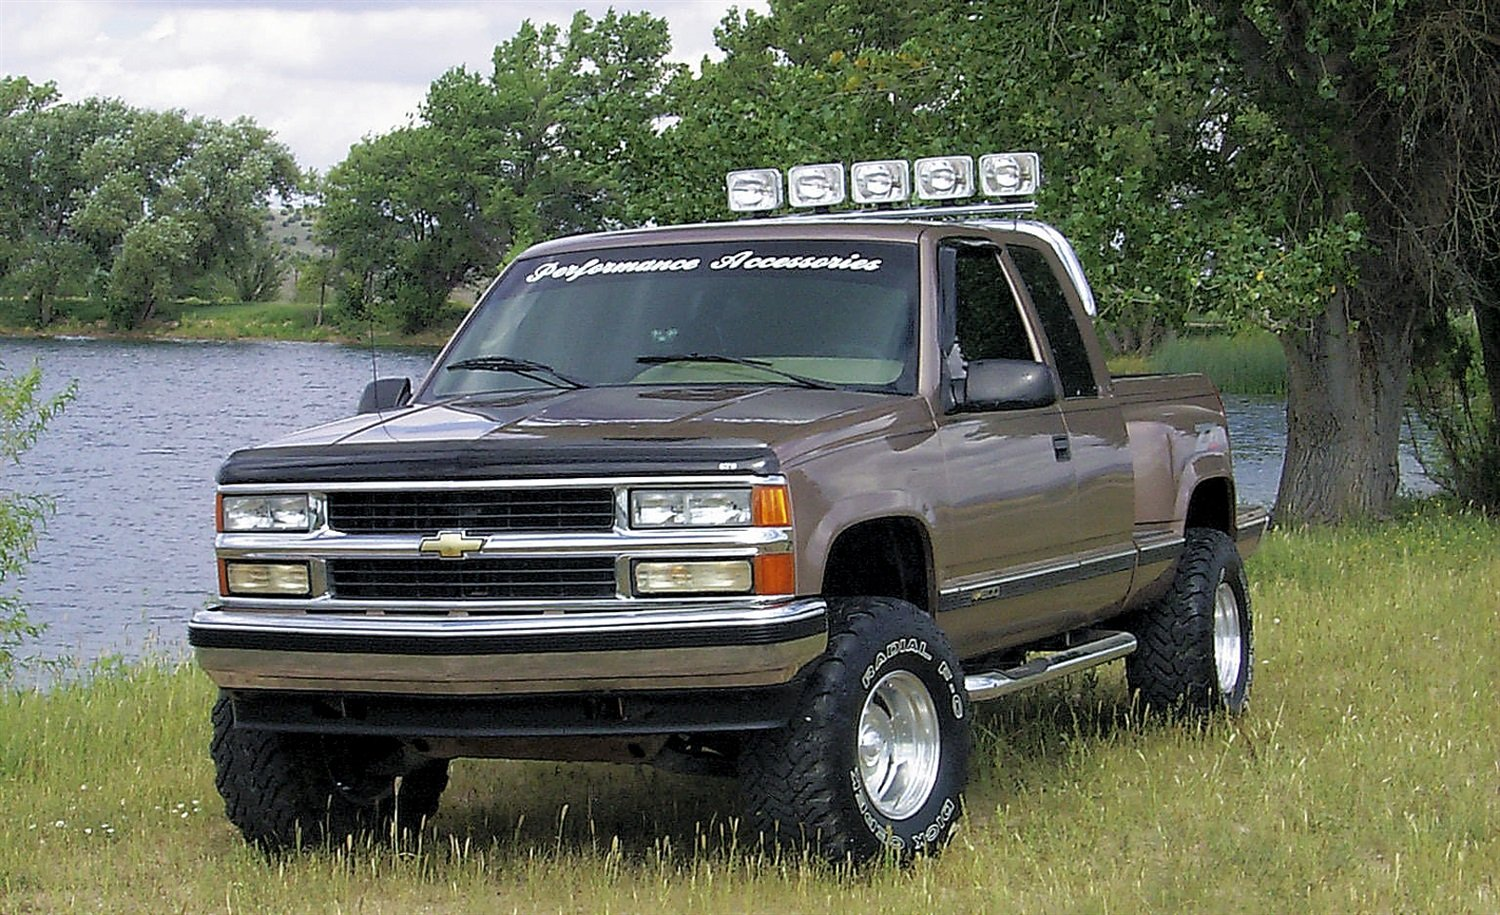 Silverado 1996 chevy silverado accessories : Amazon.com: Performance Accessories (113) Body Lift Kit for Chevy ...